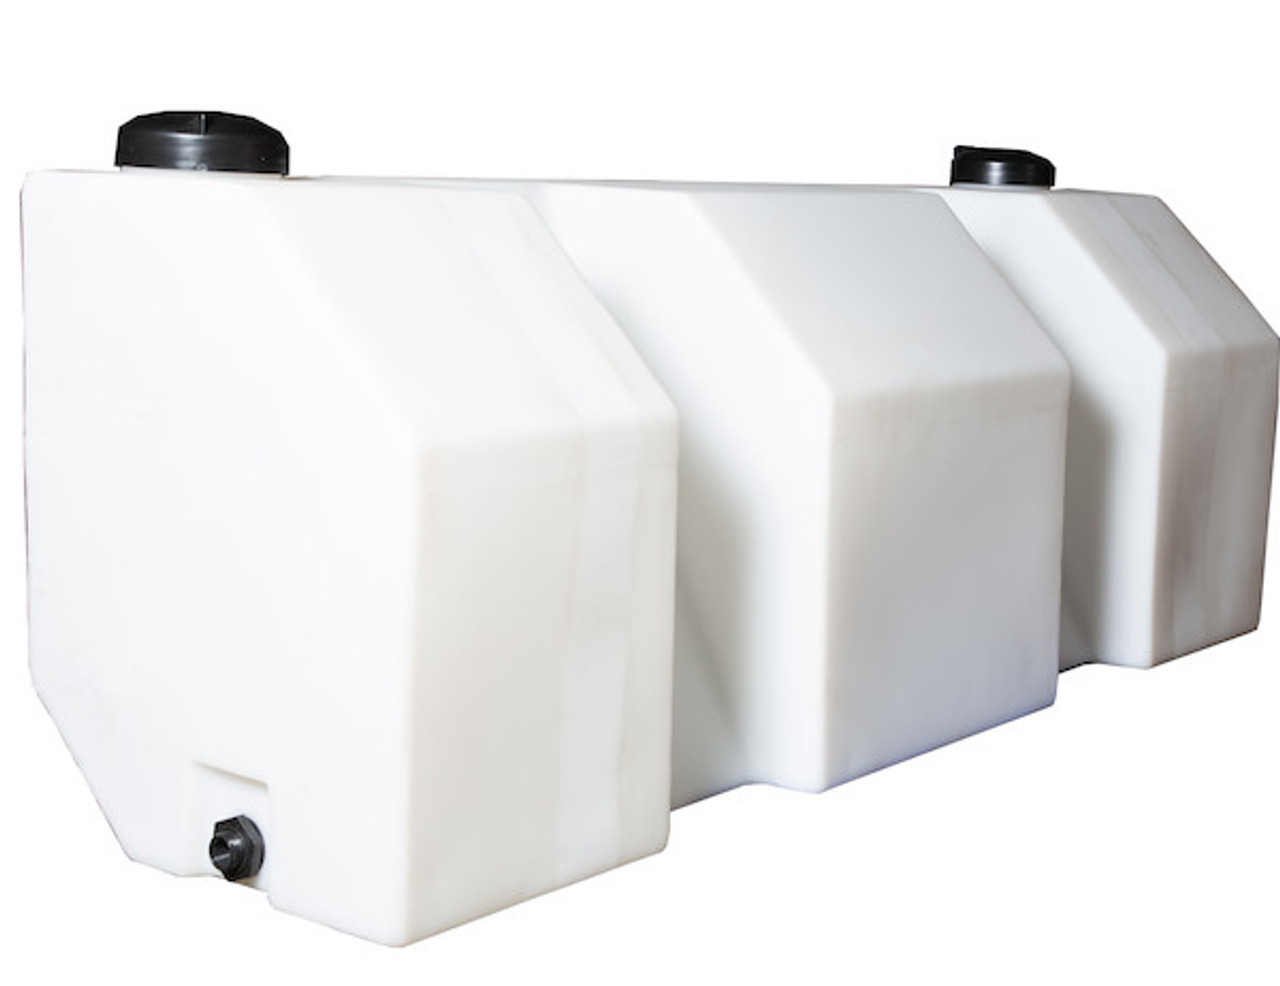 LS4H Buyers SaltDogg  Pre-Wet Kit With One 105-Gallon Wedge Poly V-Box Mount Reservoir  Picture # 4